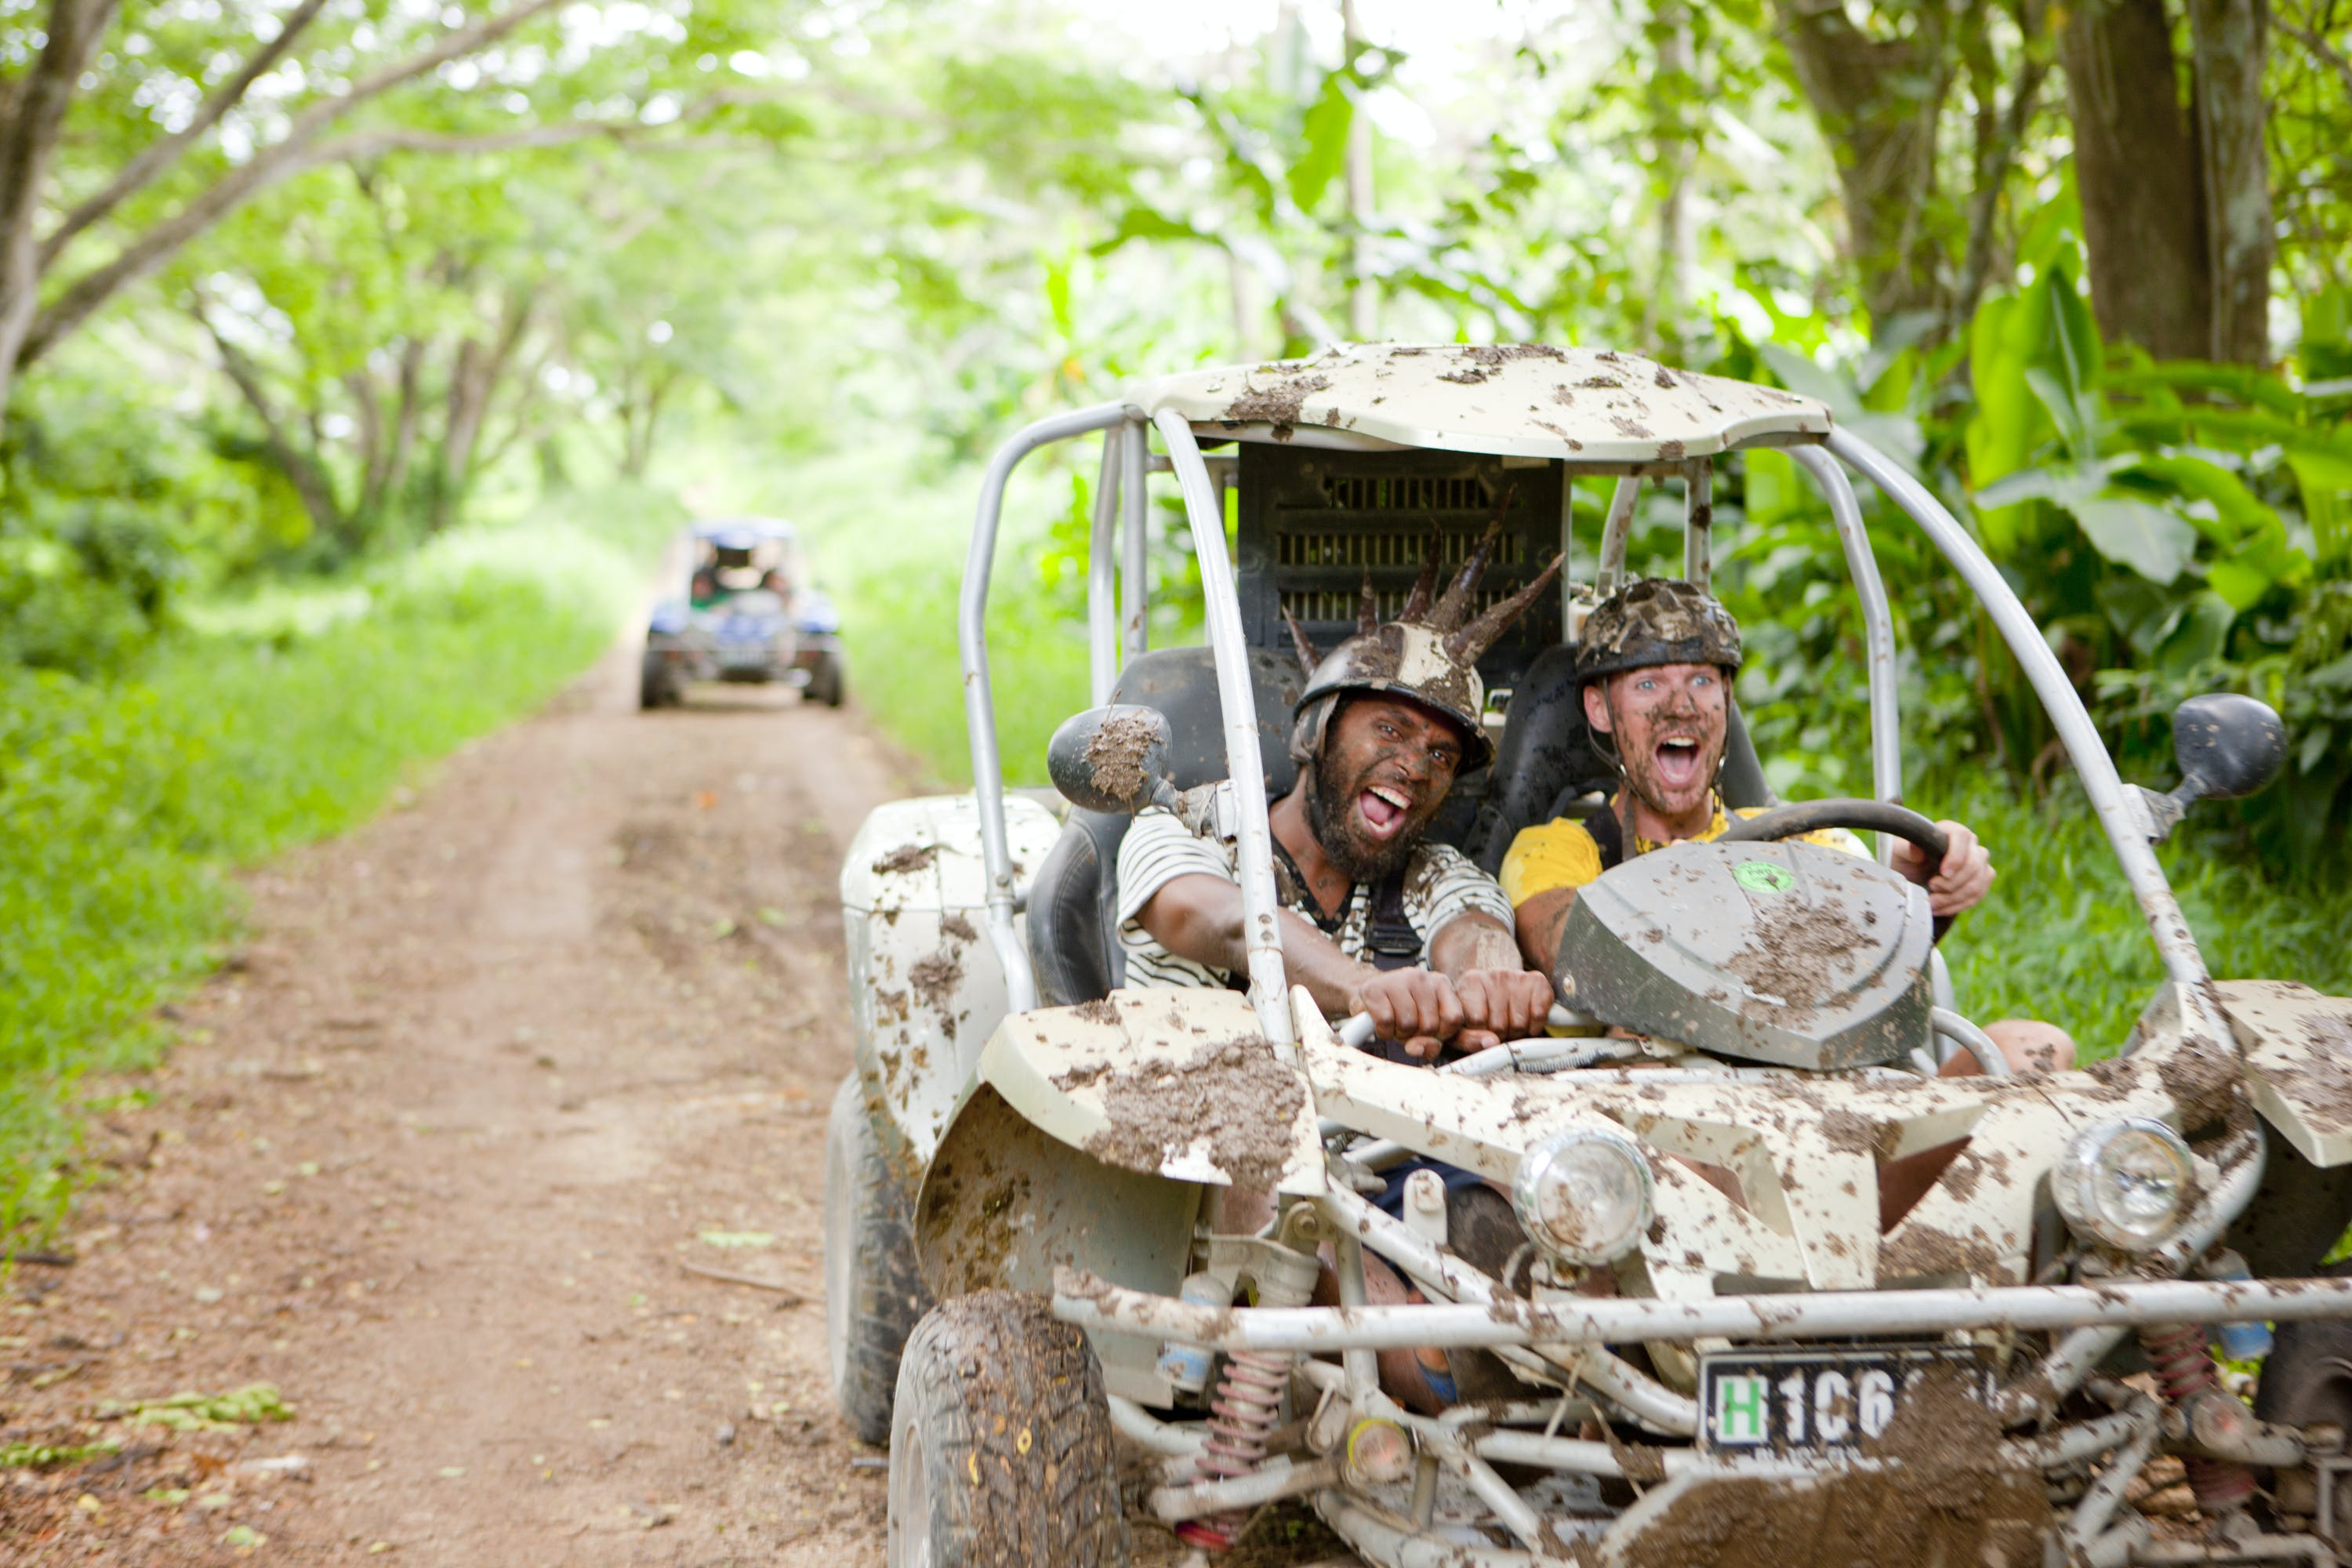 Buggy Adventures #toursvanutau #erakorislandresort Vanuatu tourism